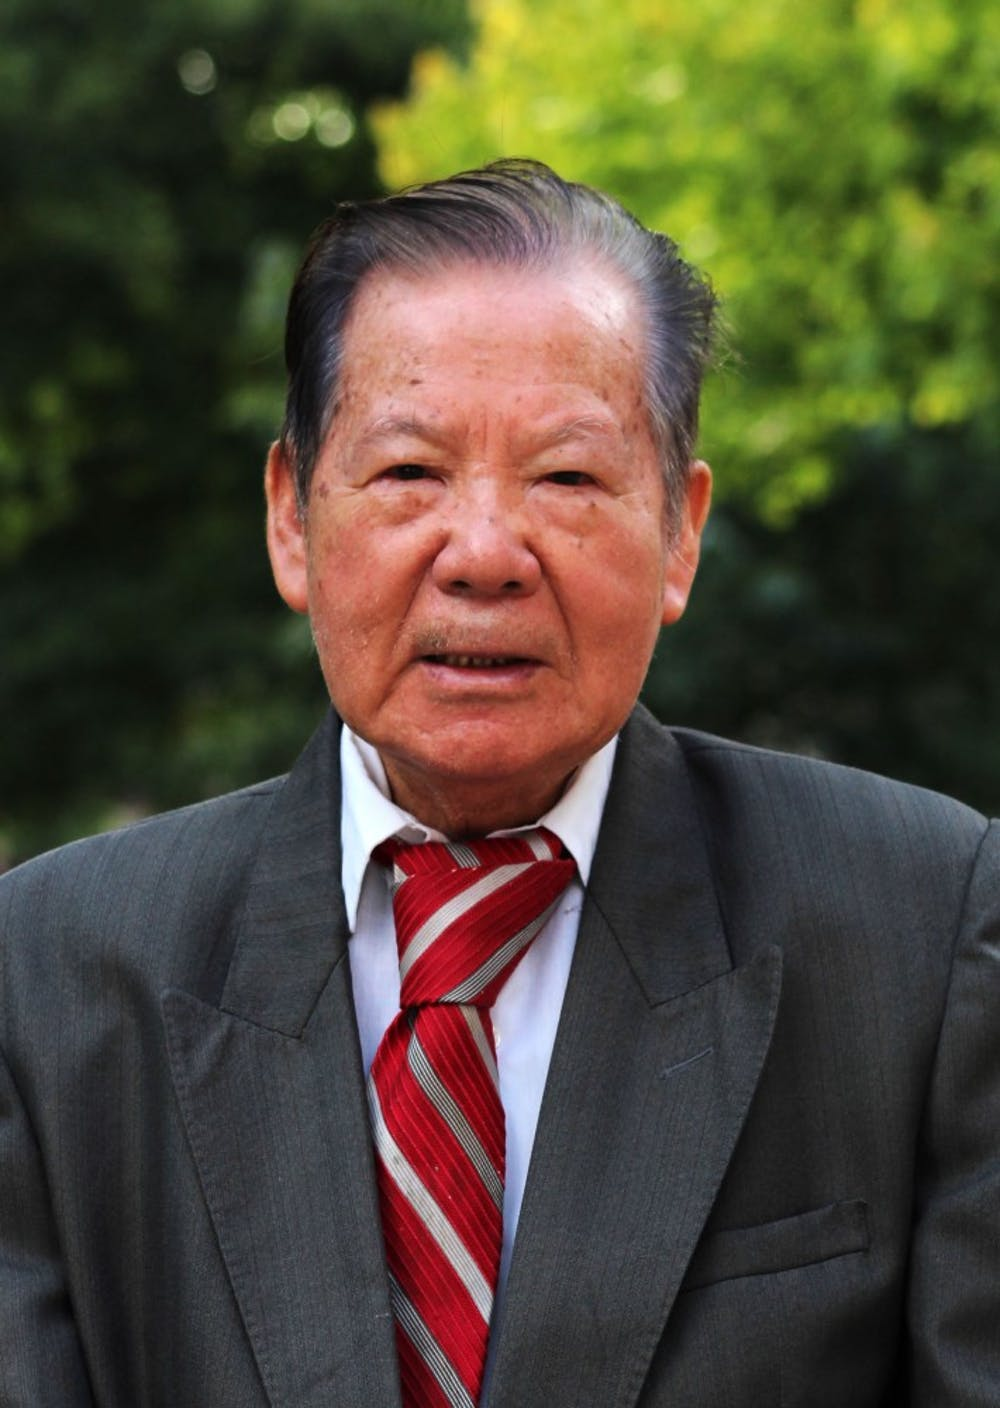 <p>Teh-Kuang Chang Thursday, Aug. 30, 2018 on Ball State University Campus. Chang is professor of Political Science at Ball State University and has been teaching for 53 years. <strong>Michaela Kelley, DN</strong></p>